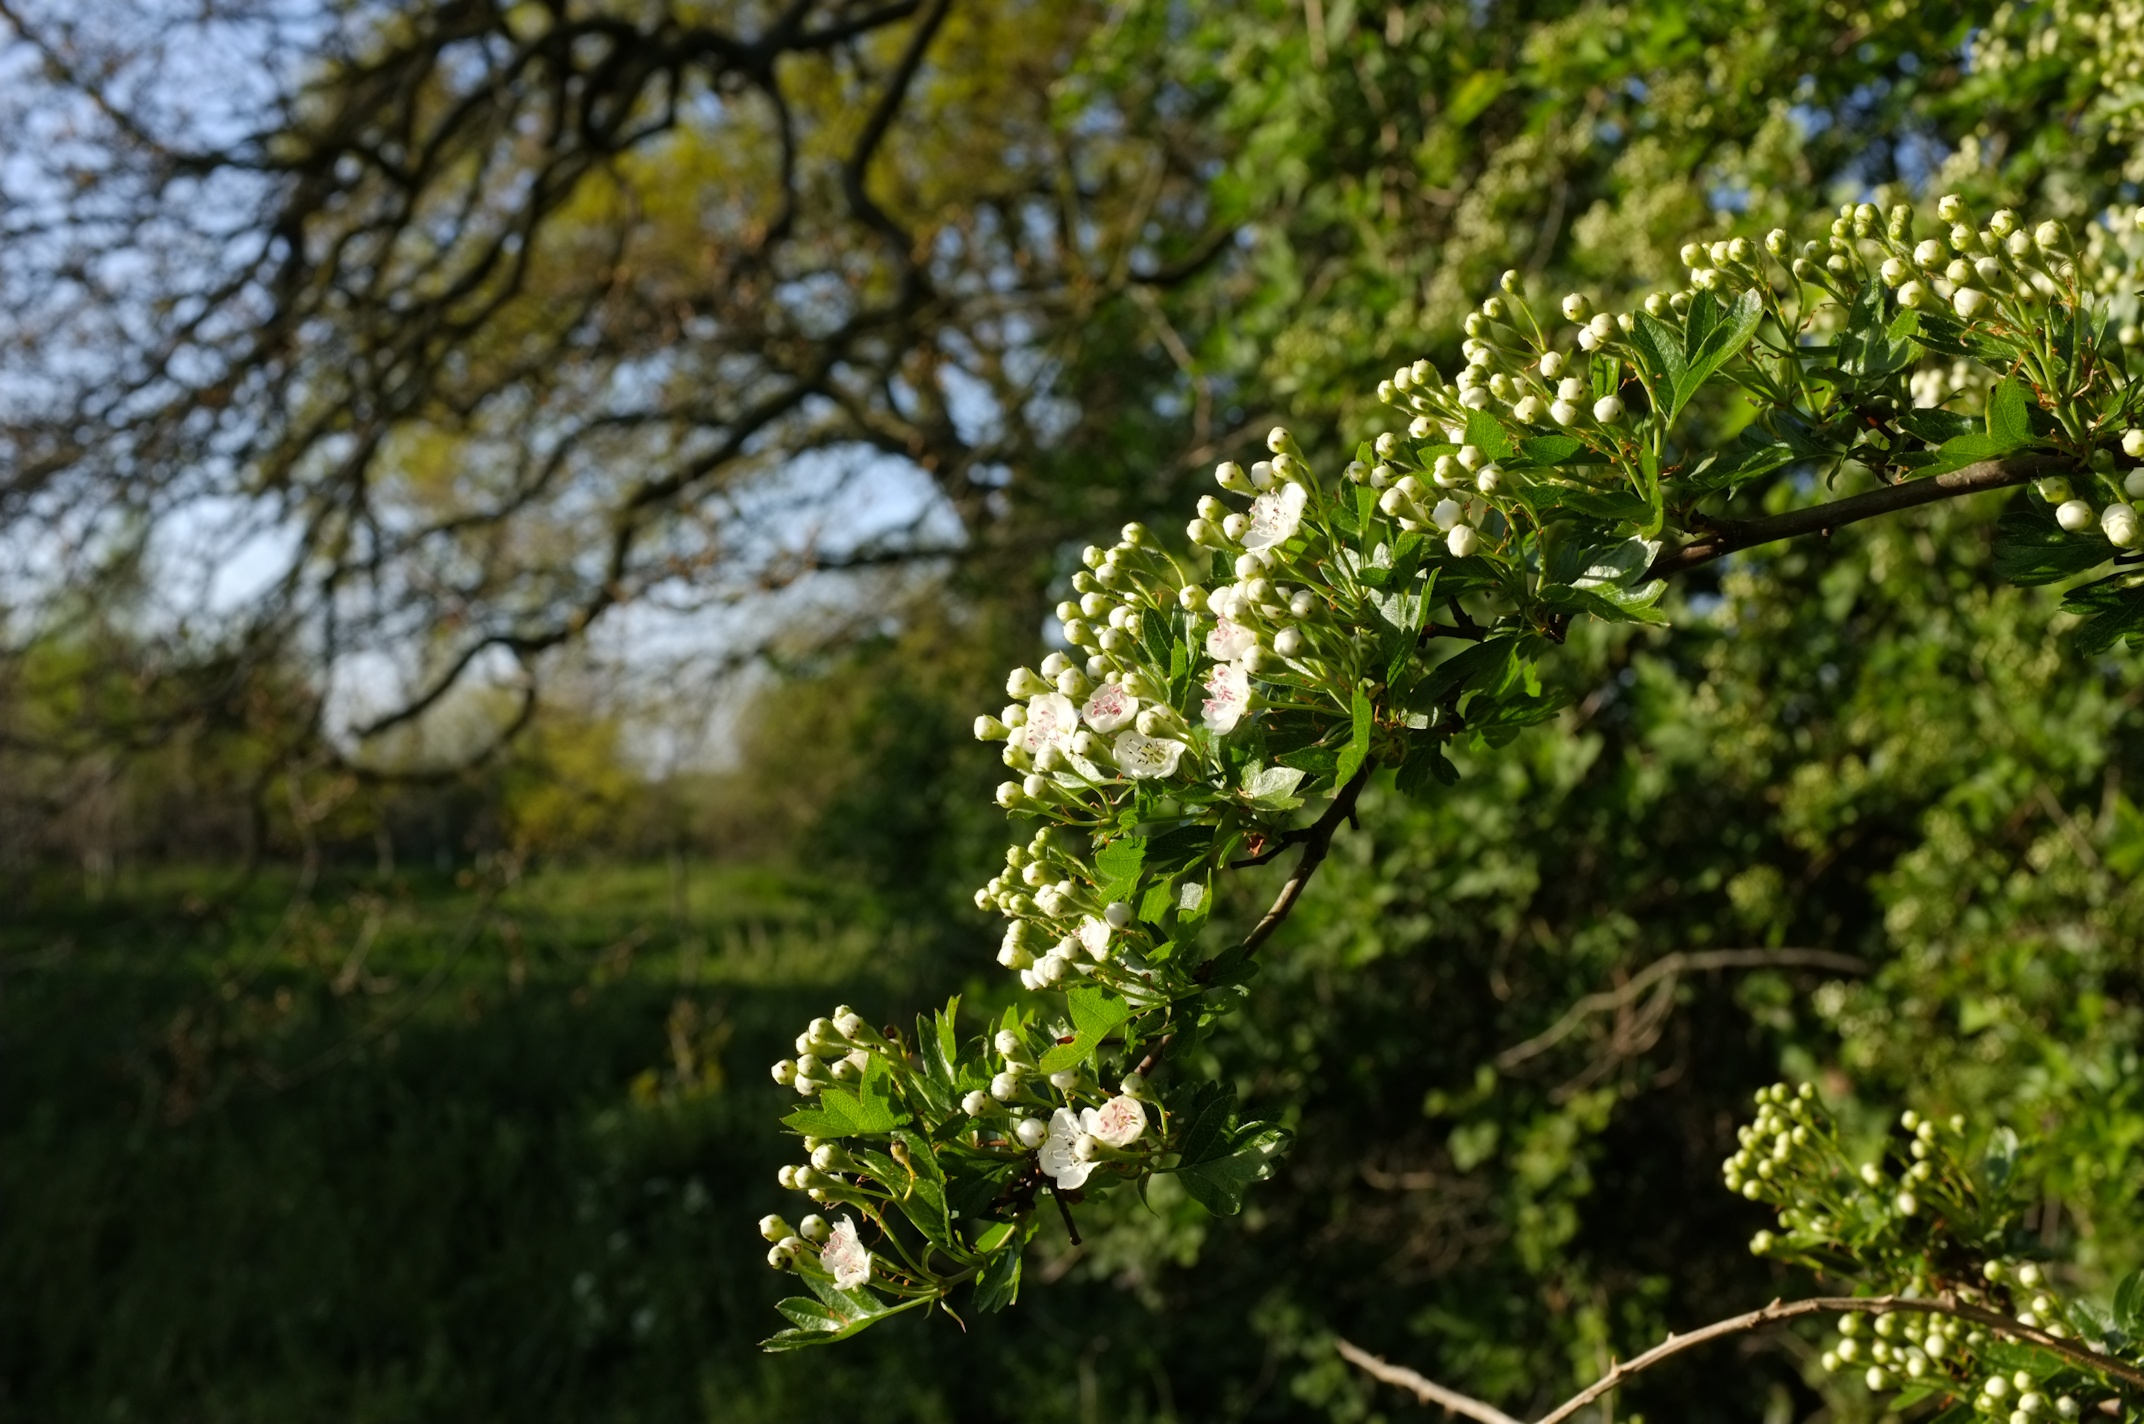 Hawthorn in bloom at Quaker Wood